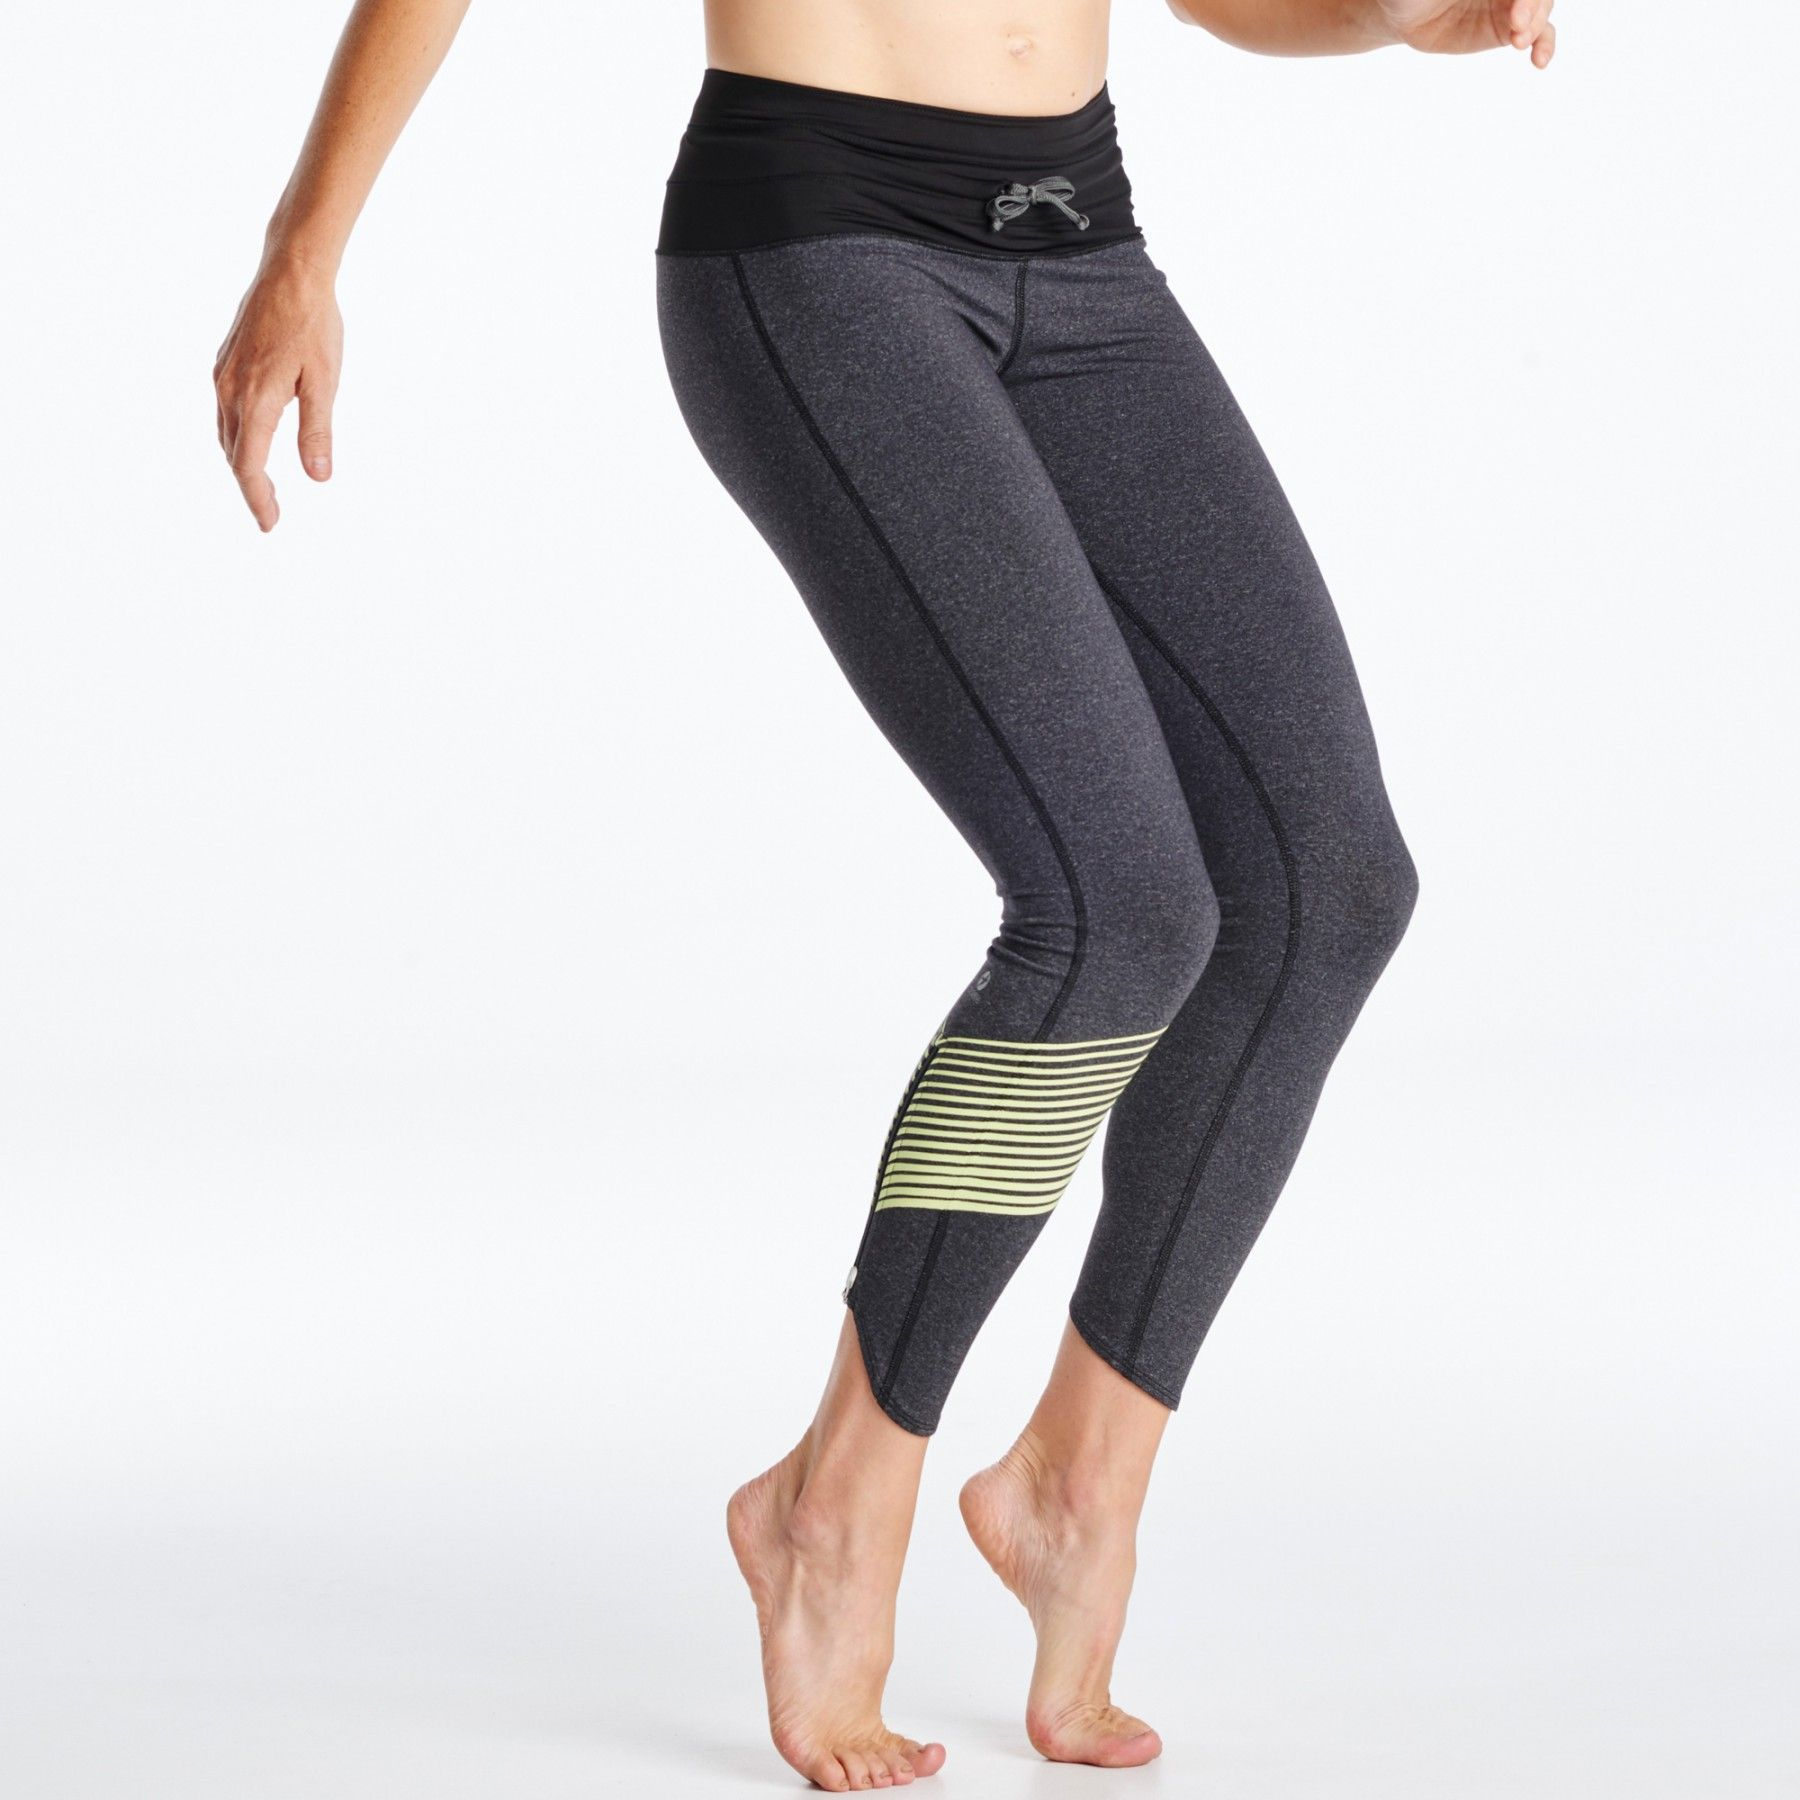 A running tight inspired by Kara Goucher, the KG Tights are your ultimate warm up, cold weather running tight. A wide waistband, compressive material, and zipper opening at the ankle.